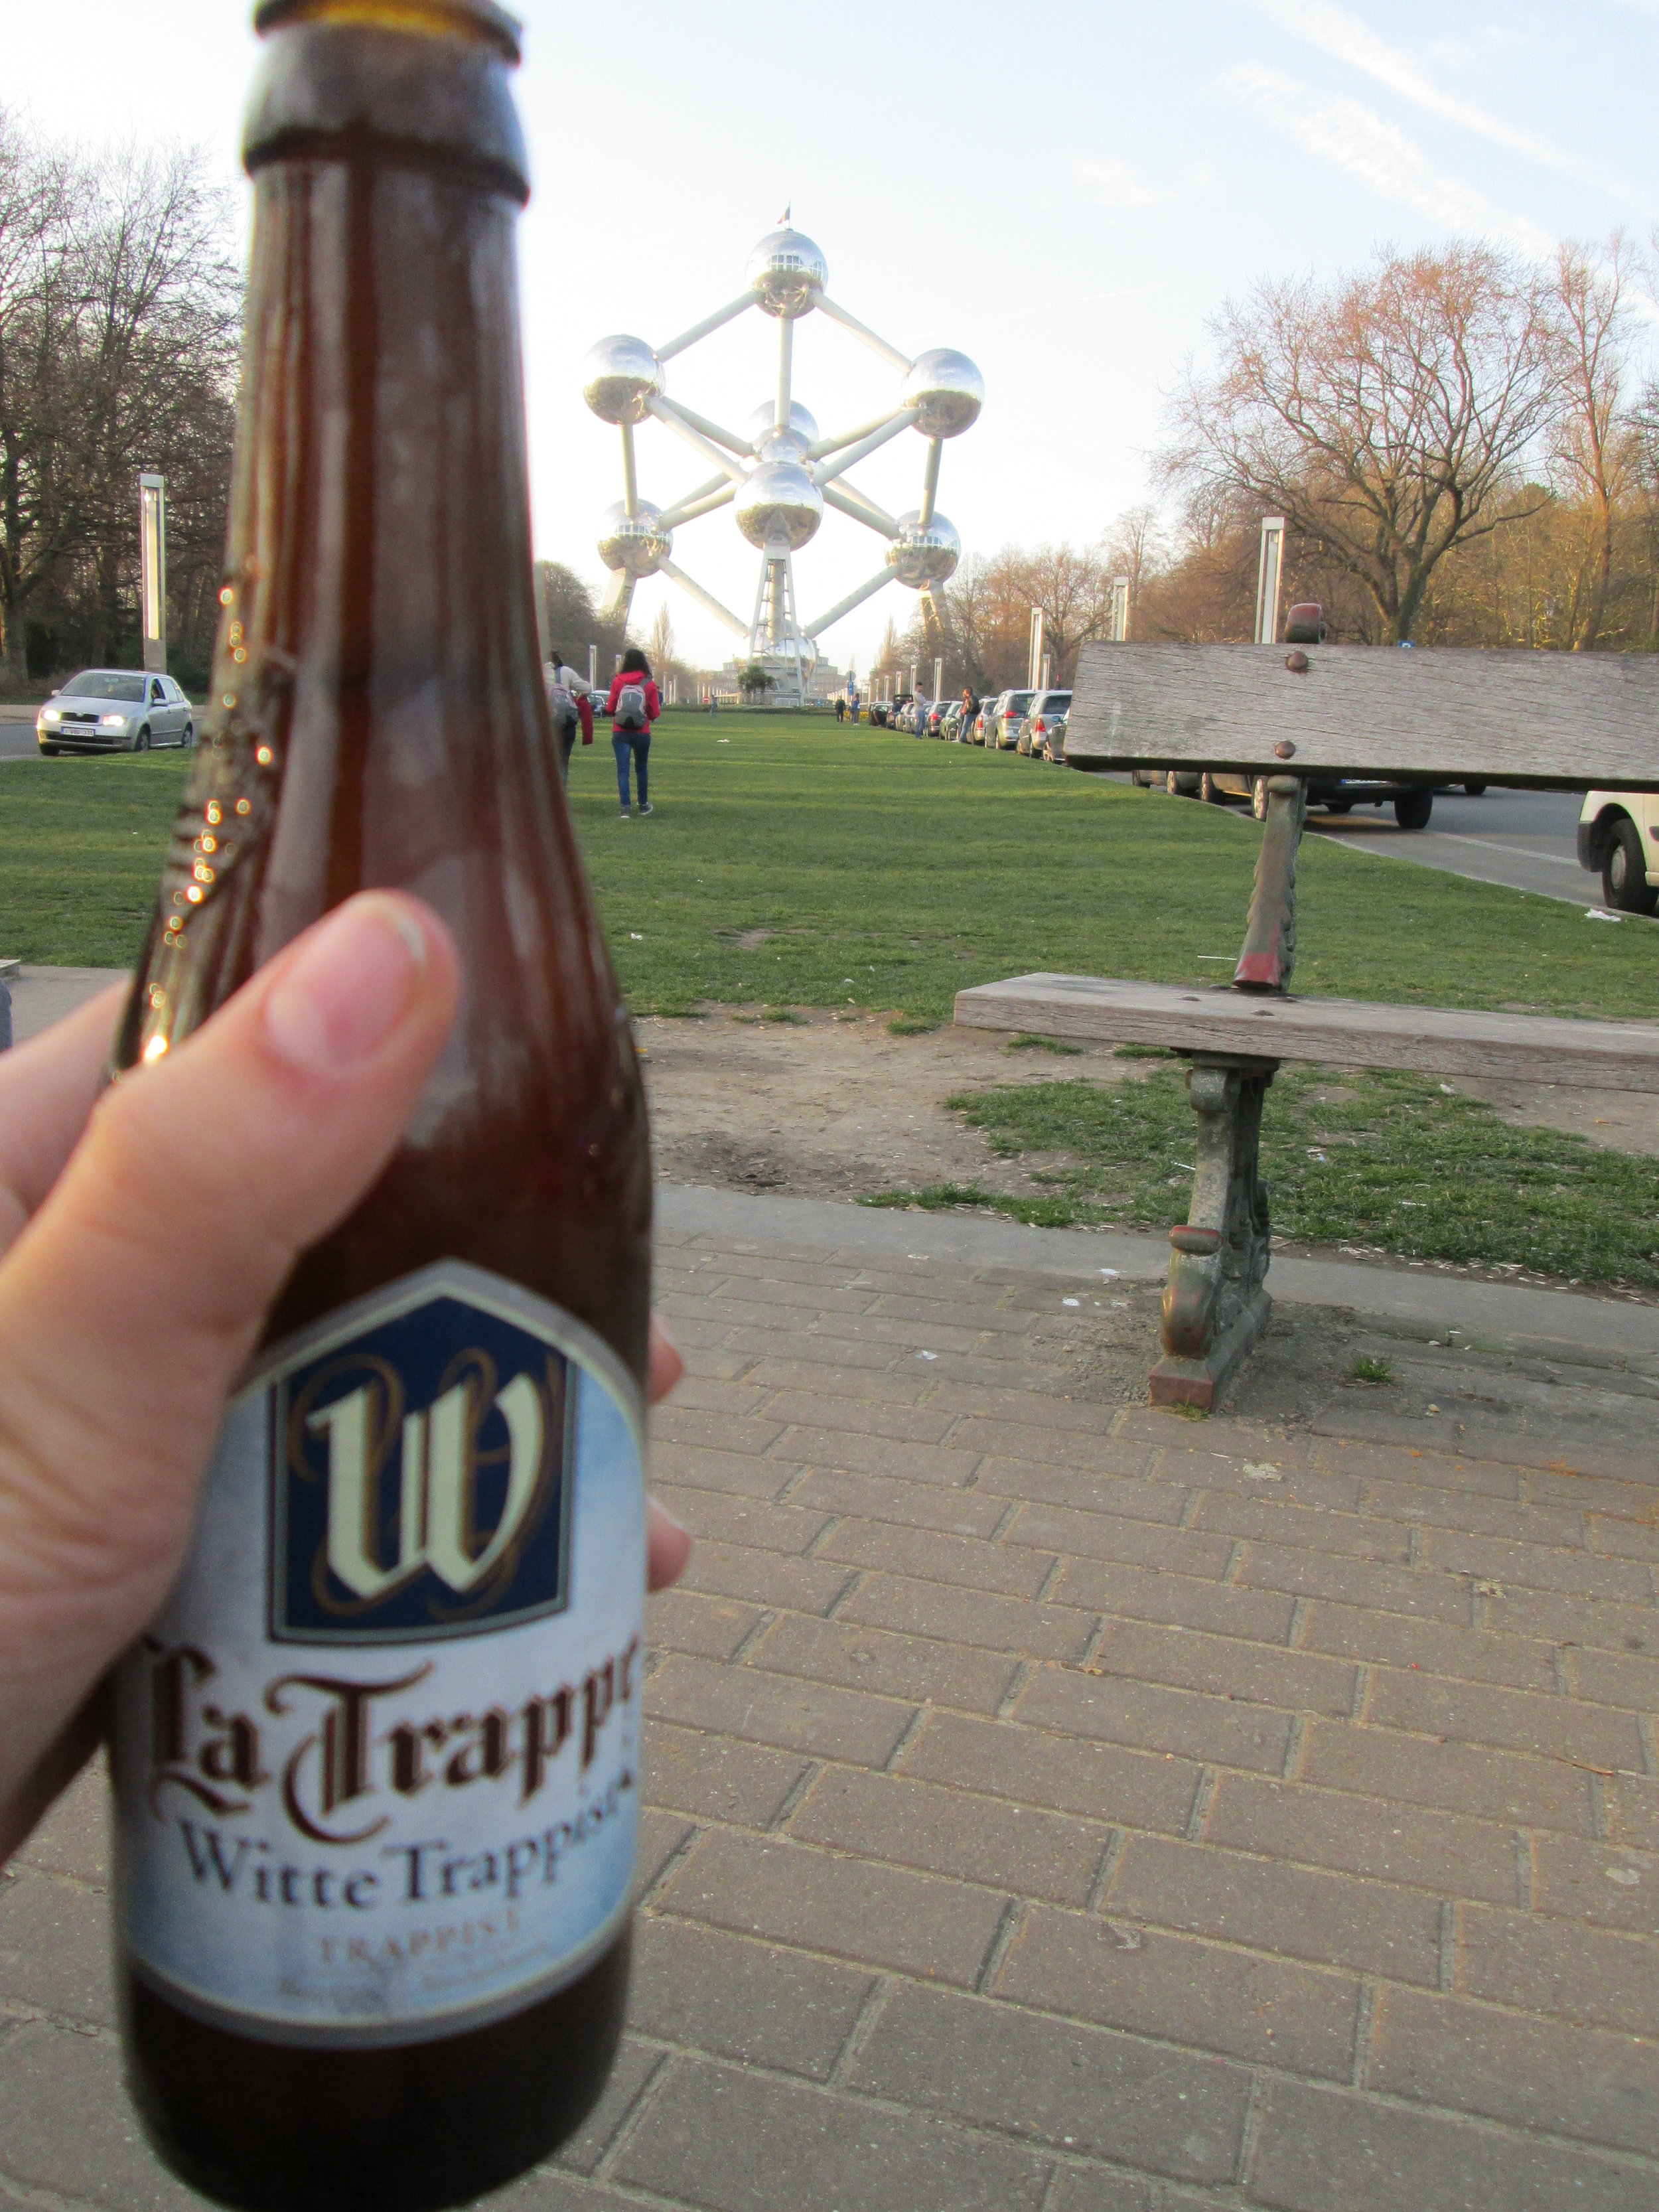 Authentic Trappist beer and the Atomium. Classic Brussels.